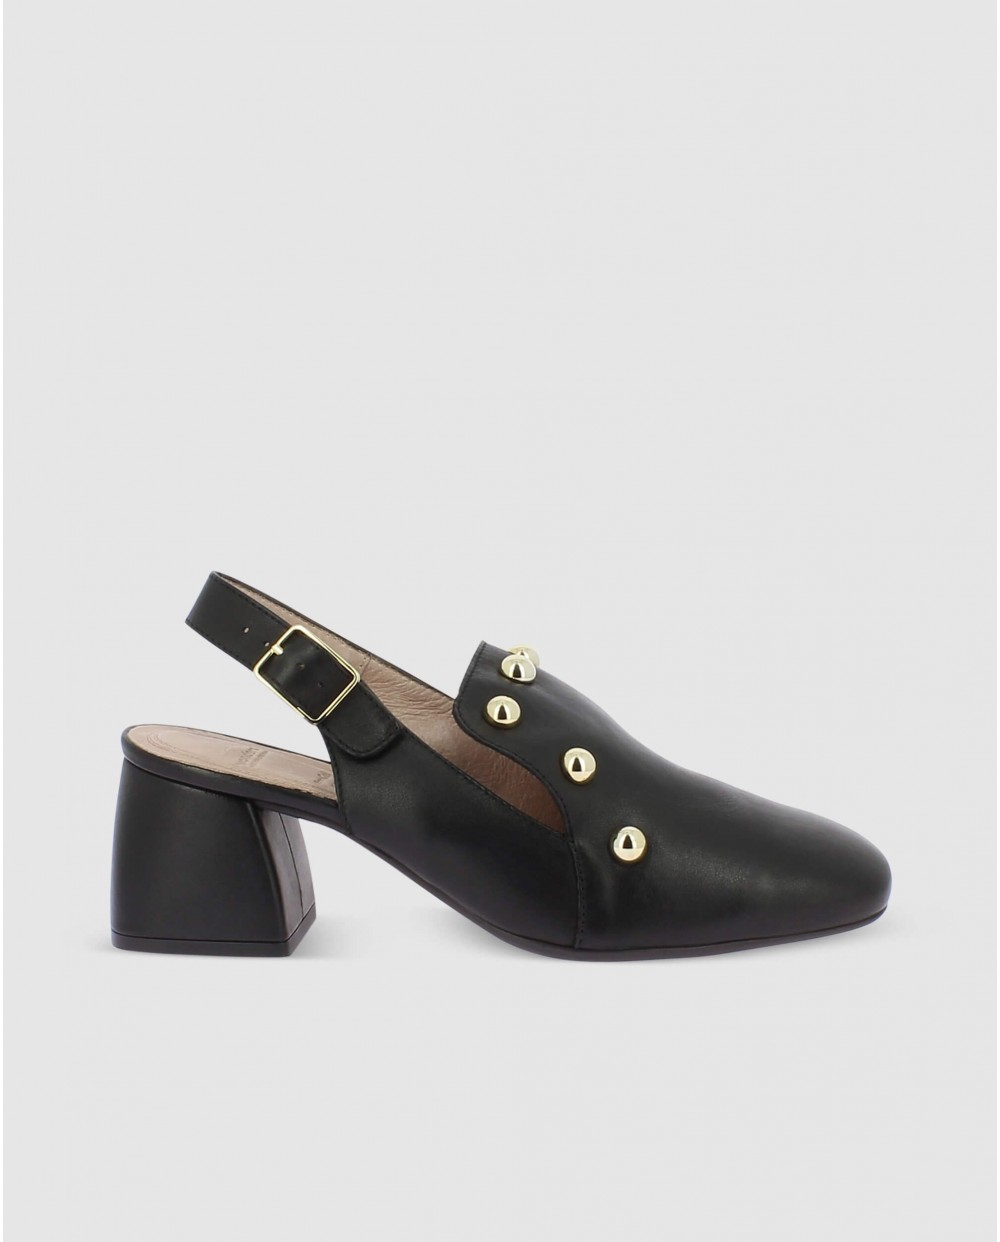 Wonders-Outlet-Backless shoe with metallic detailing